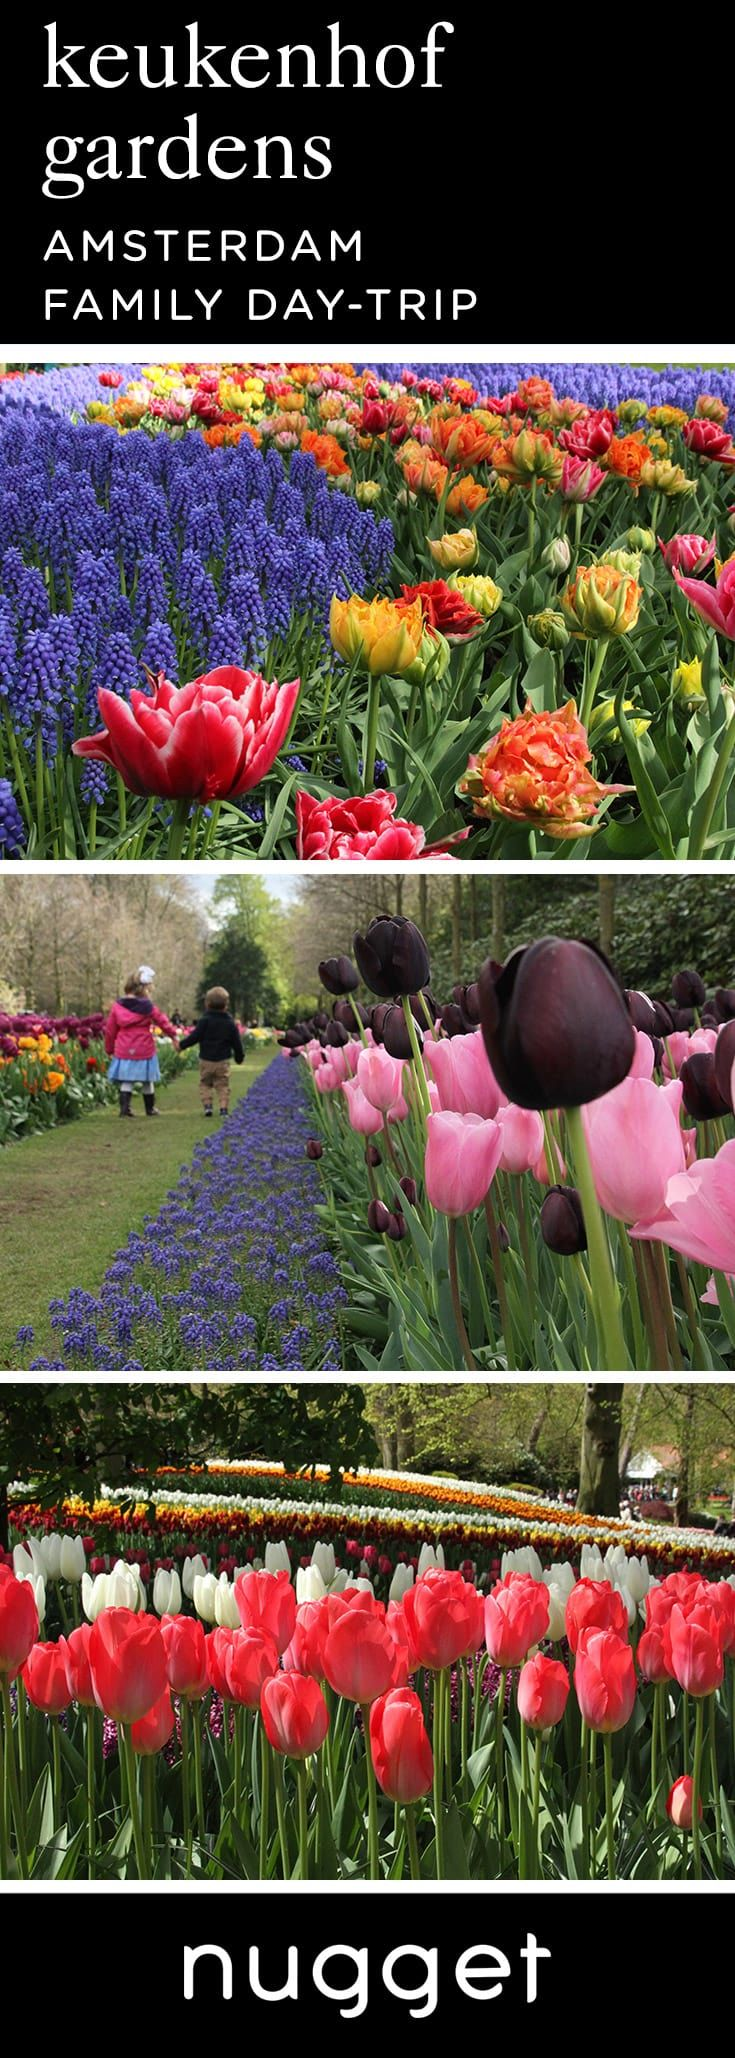 An Amsterdam day-trip itinerary. Take in the sea of flowers at Keukenhof Gardens, then head to Zandvoort Beach for a fun-filled day in the Netherlands. #FamilyTravel #TravelItinerary #Netherlands